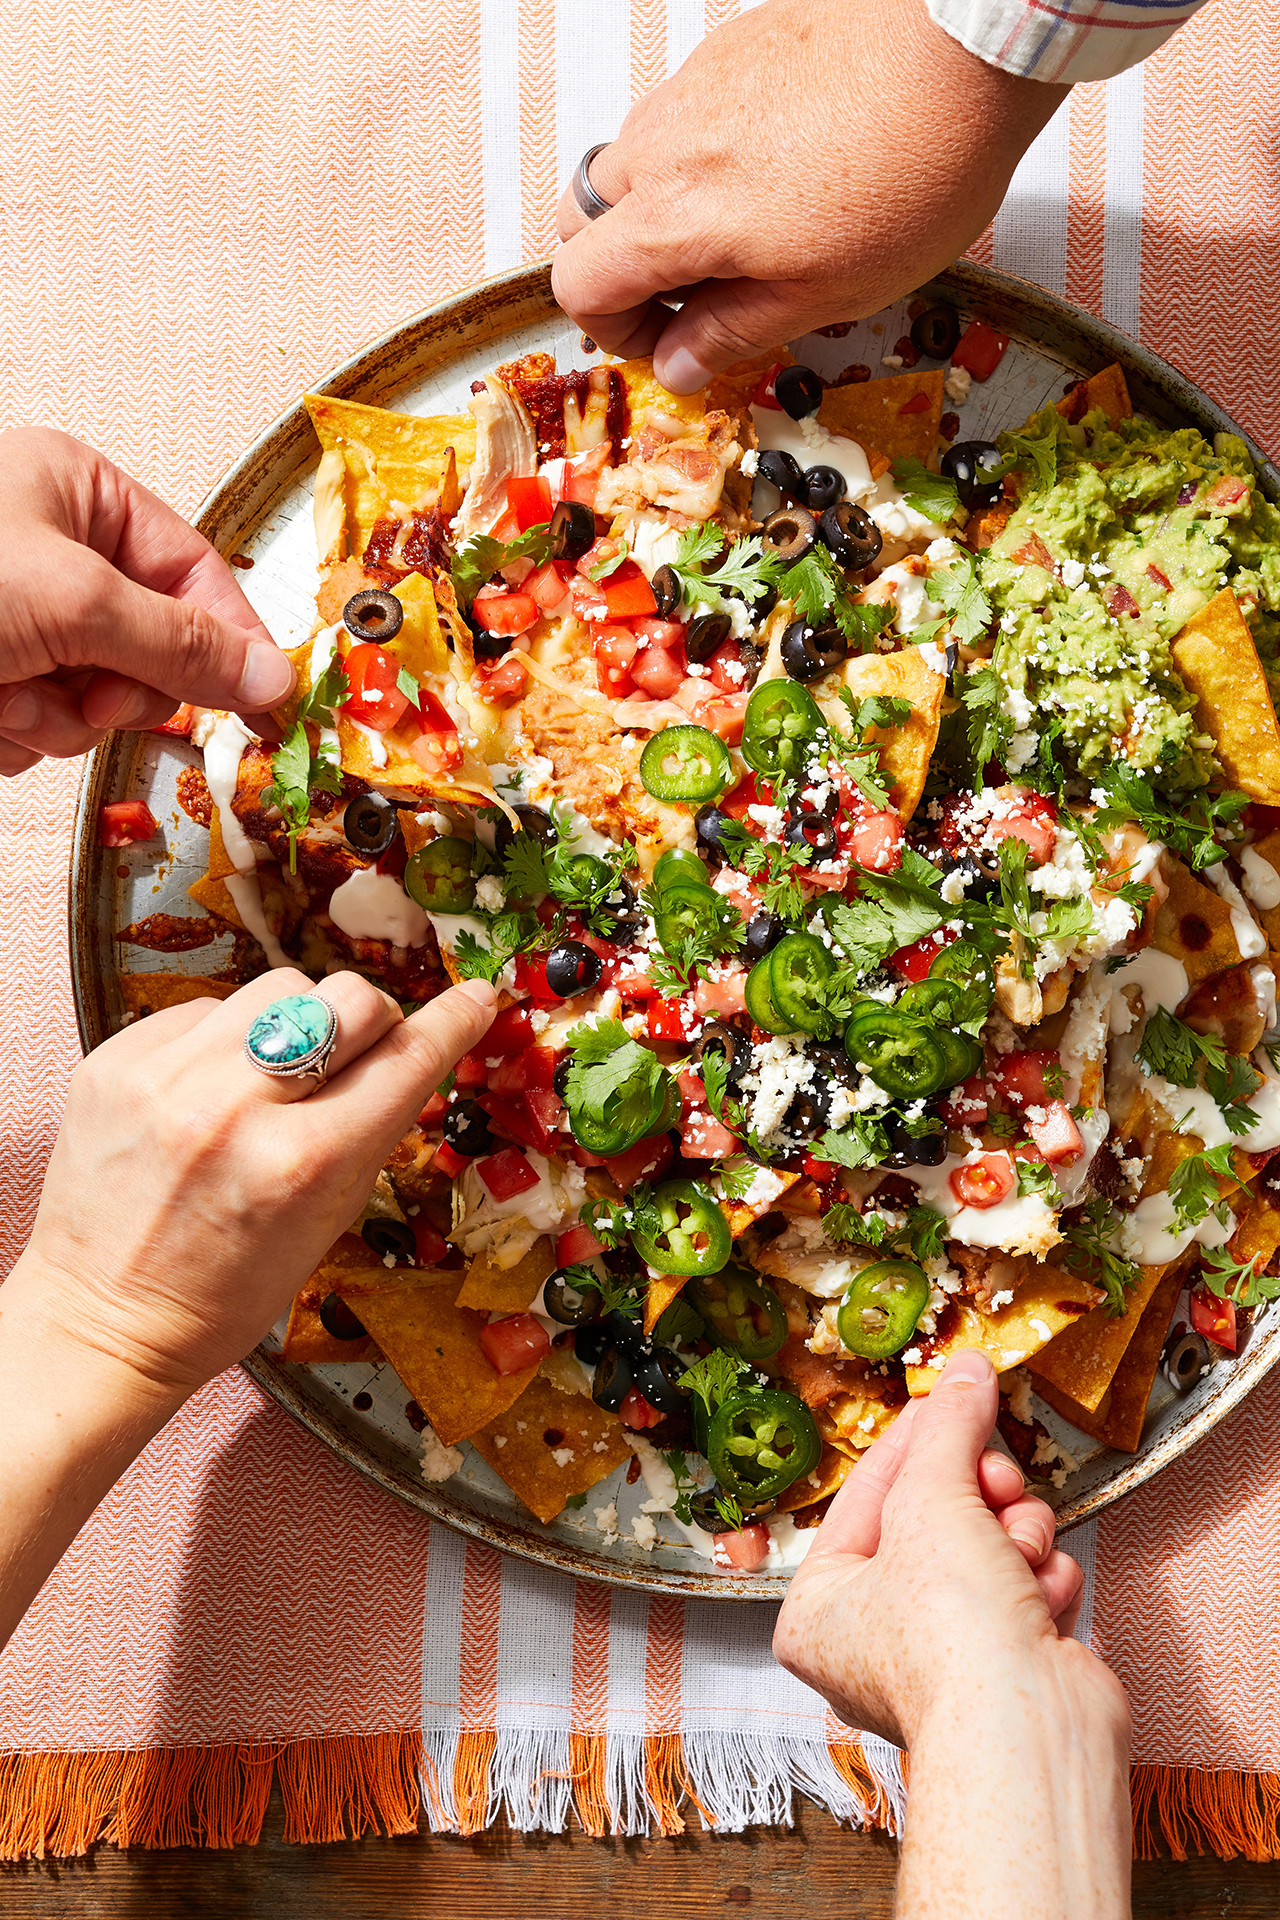 Guests grabbing chips from Mexican Party Nachos